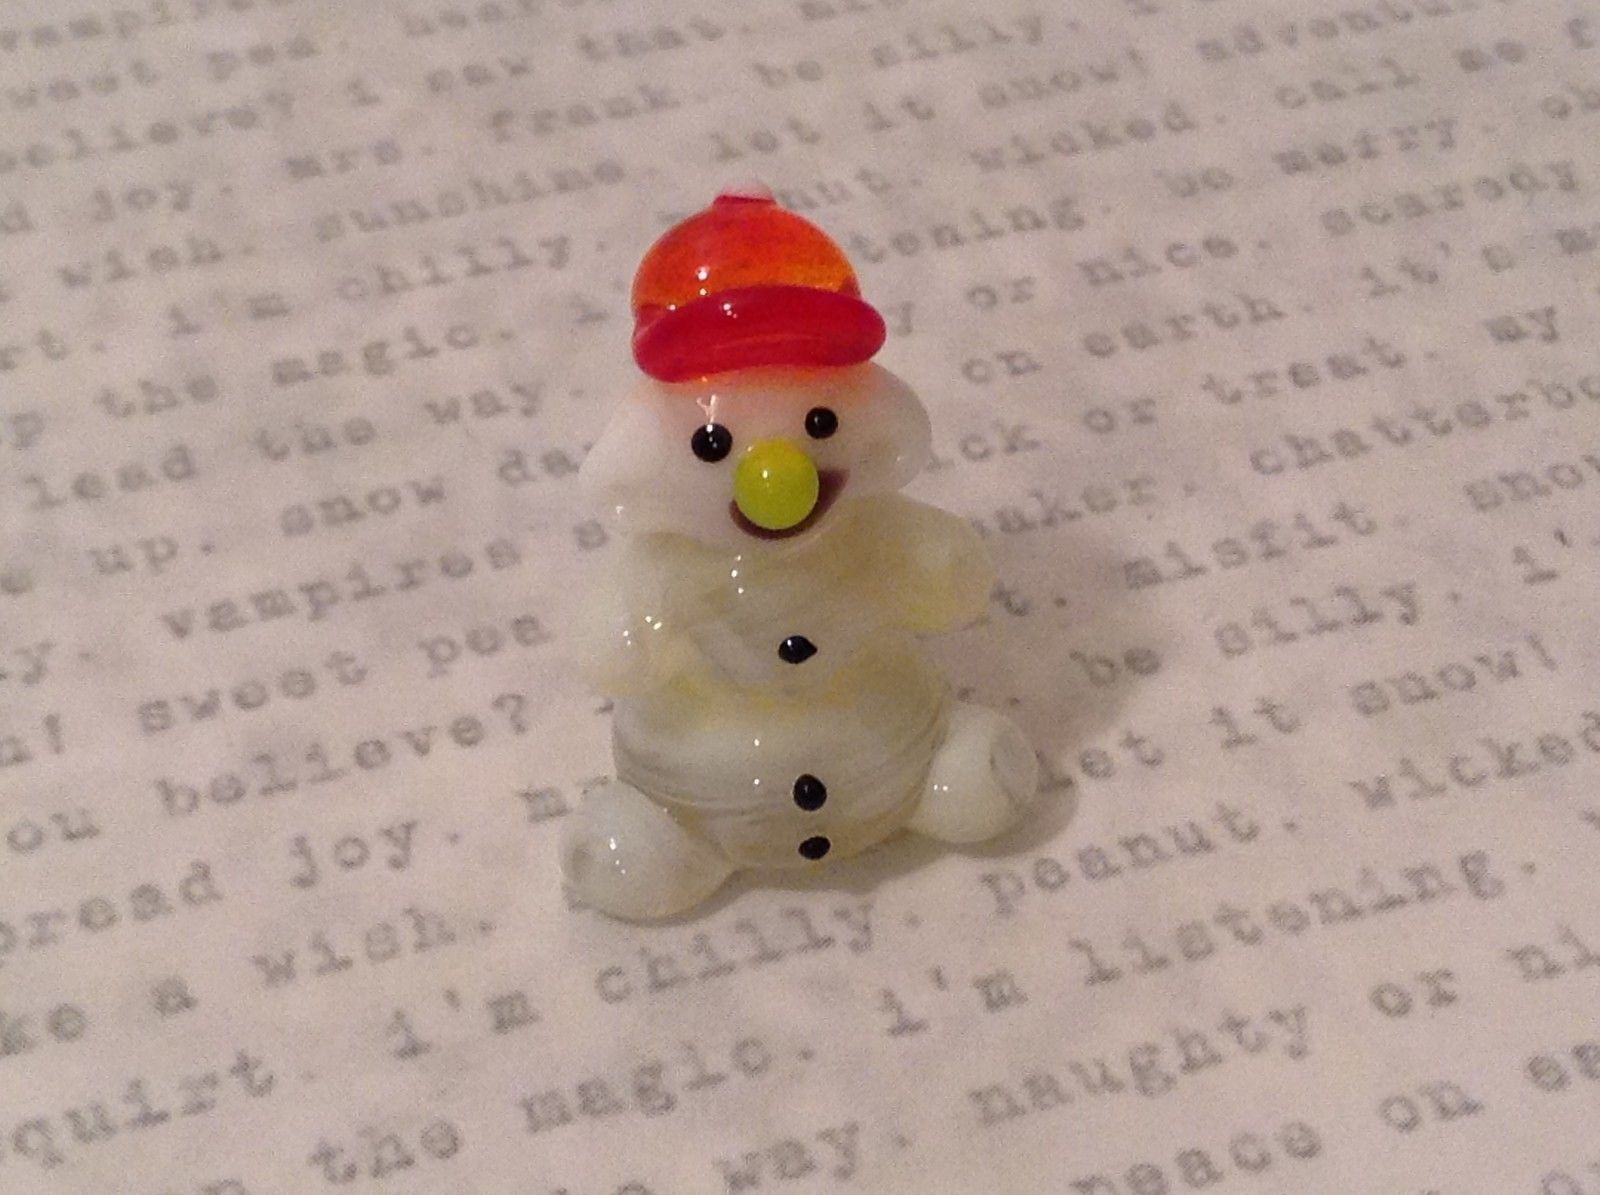 Micro Miniature handblown glass snowman w red hat smiling USA NIB